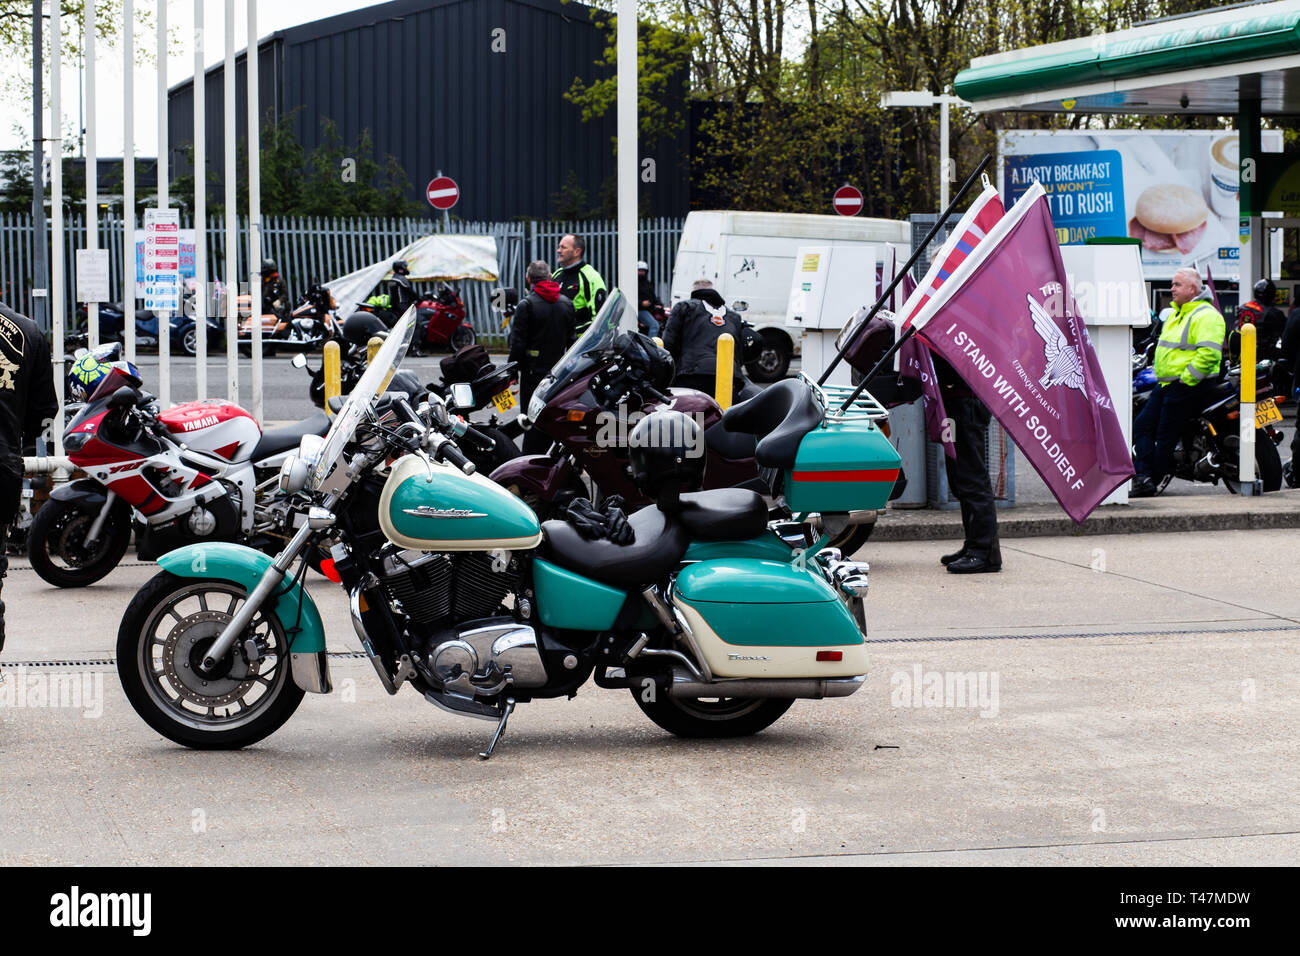 22000 motorbikes rode through London on 12th April 2019 to protest the prosecution of Soldier F for Bloody Sunday - Stock Image